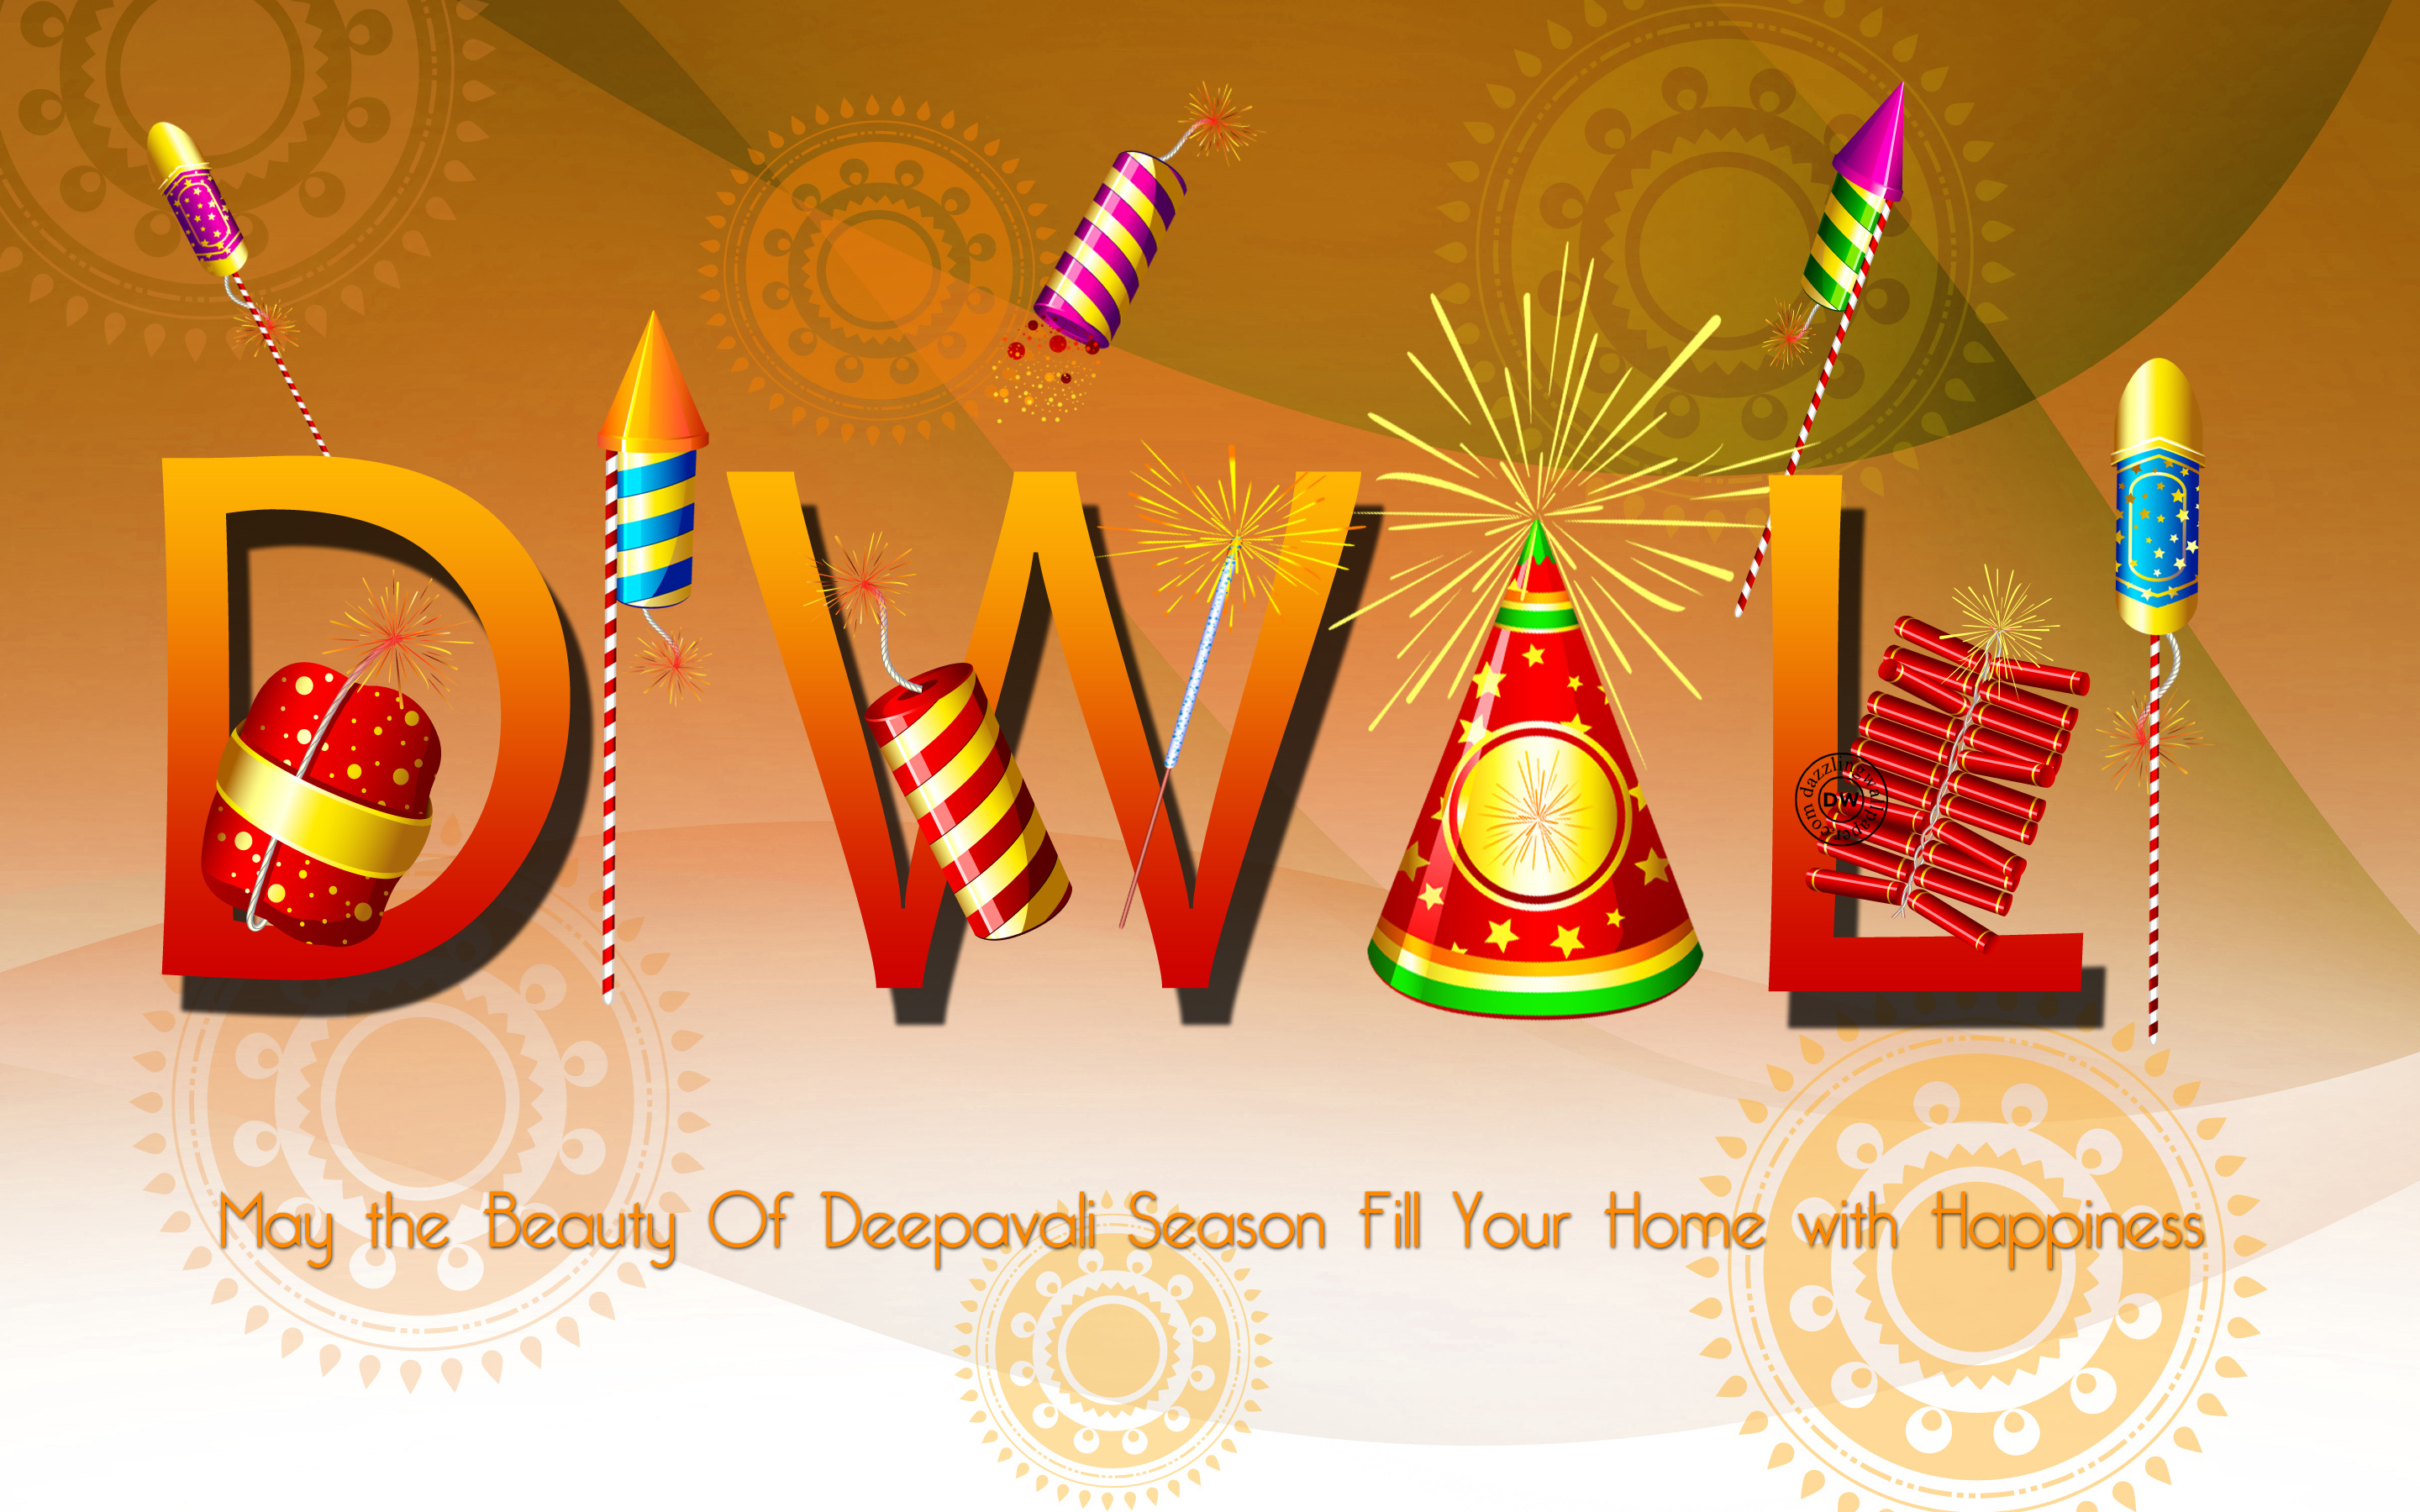 Happy diwali 2017 images quotes wishes sms greetings messages diwali wishes with quotes m4hsunfo